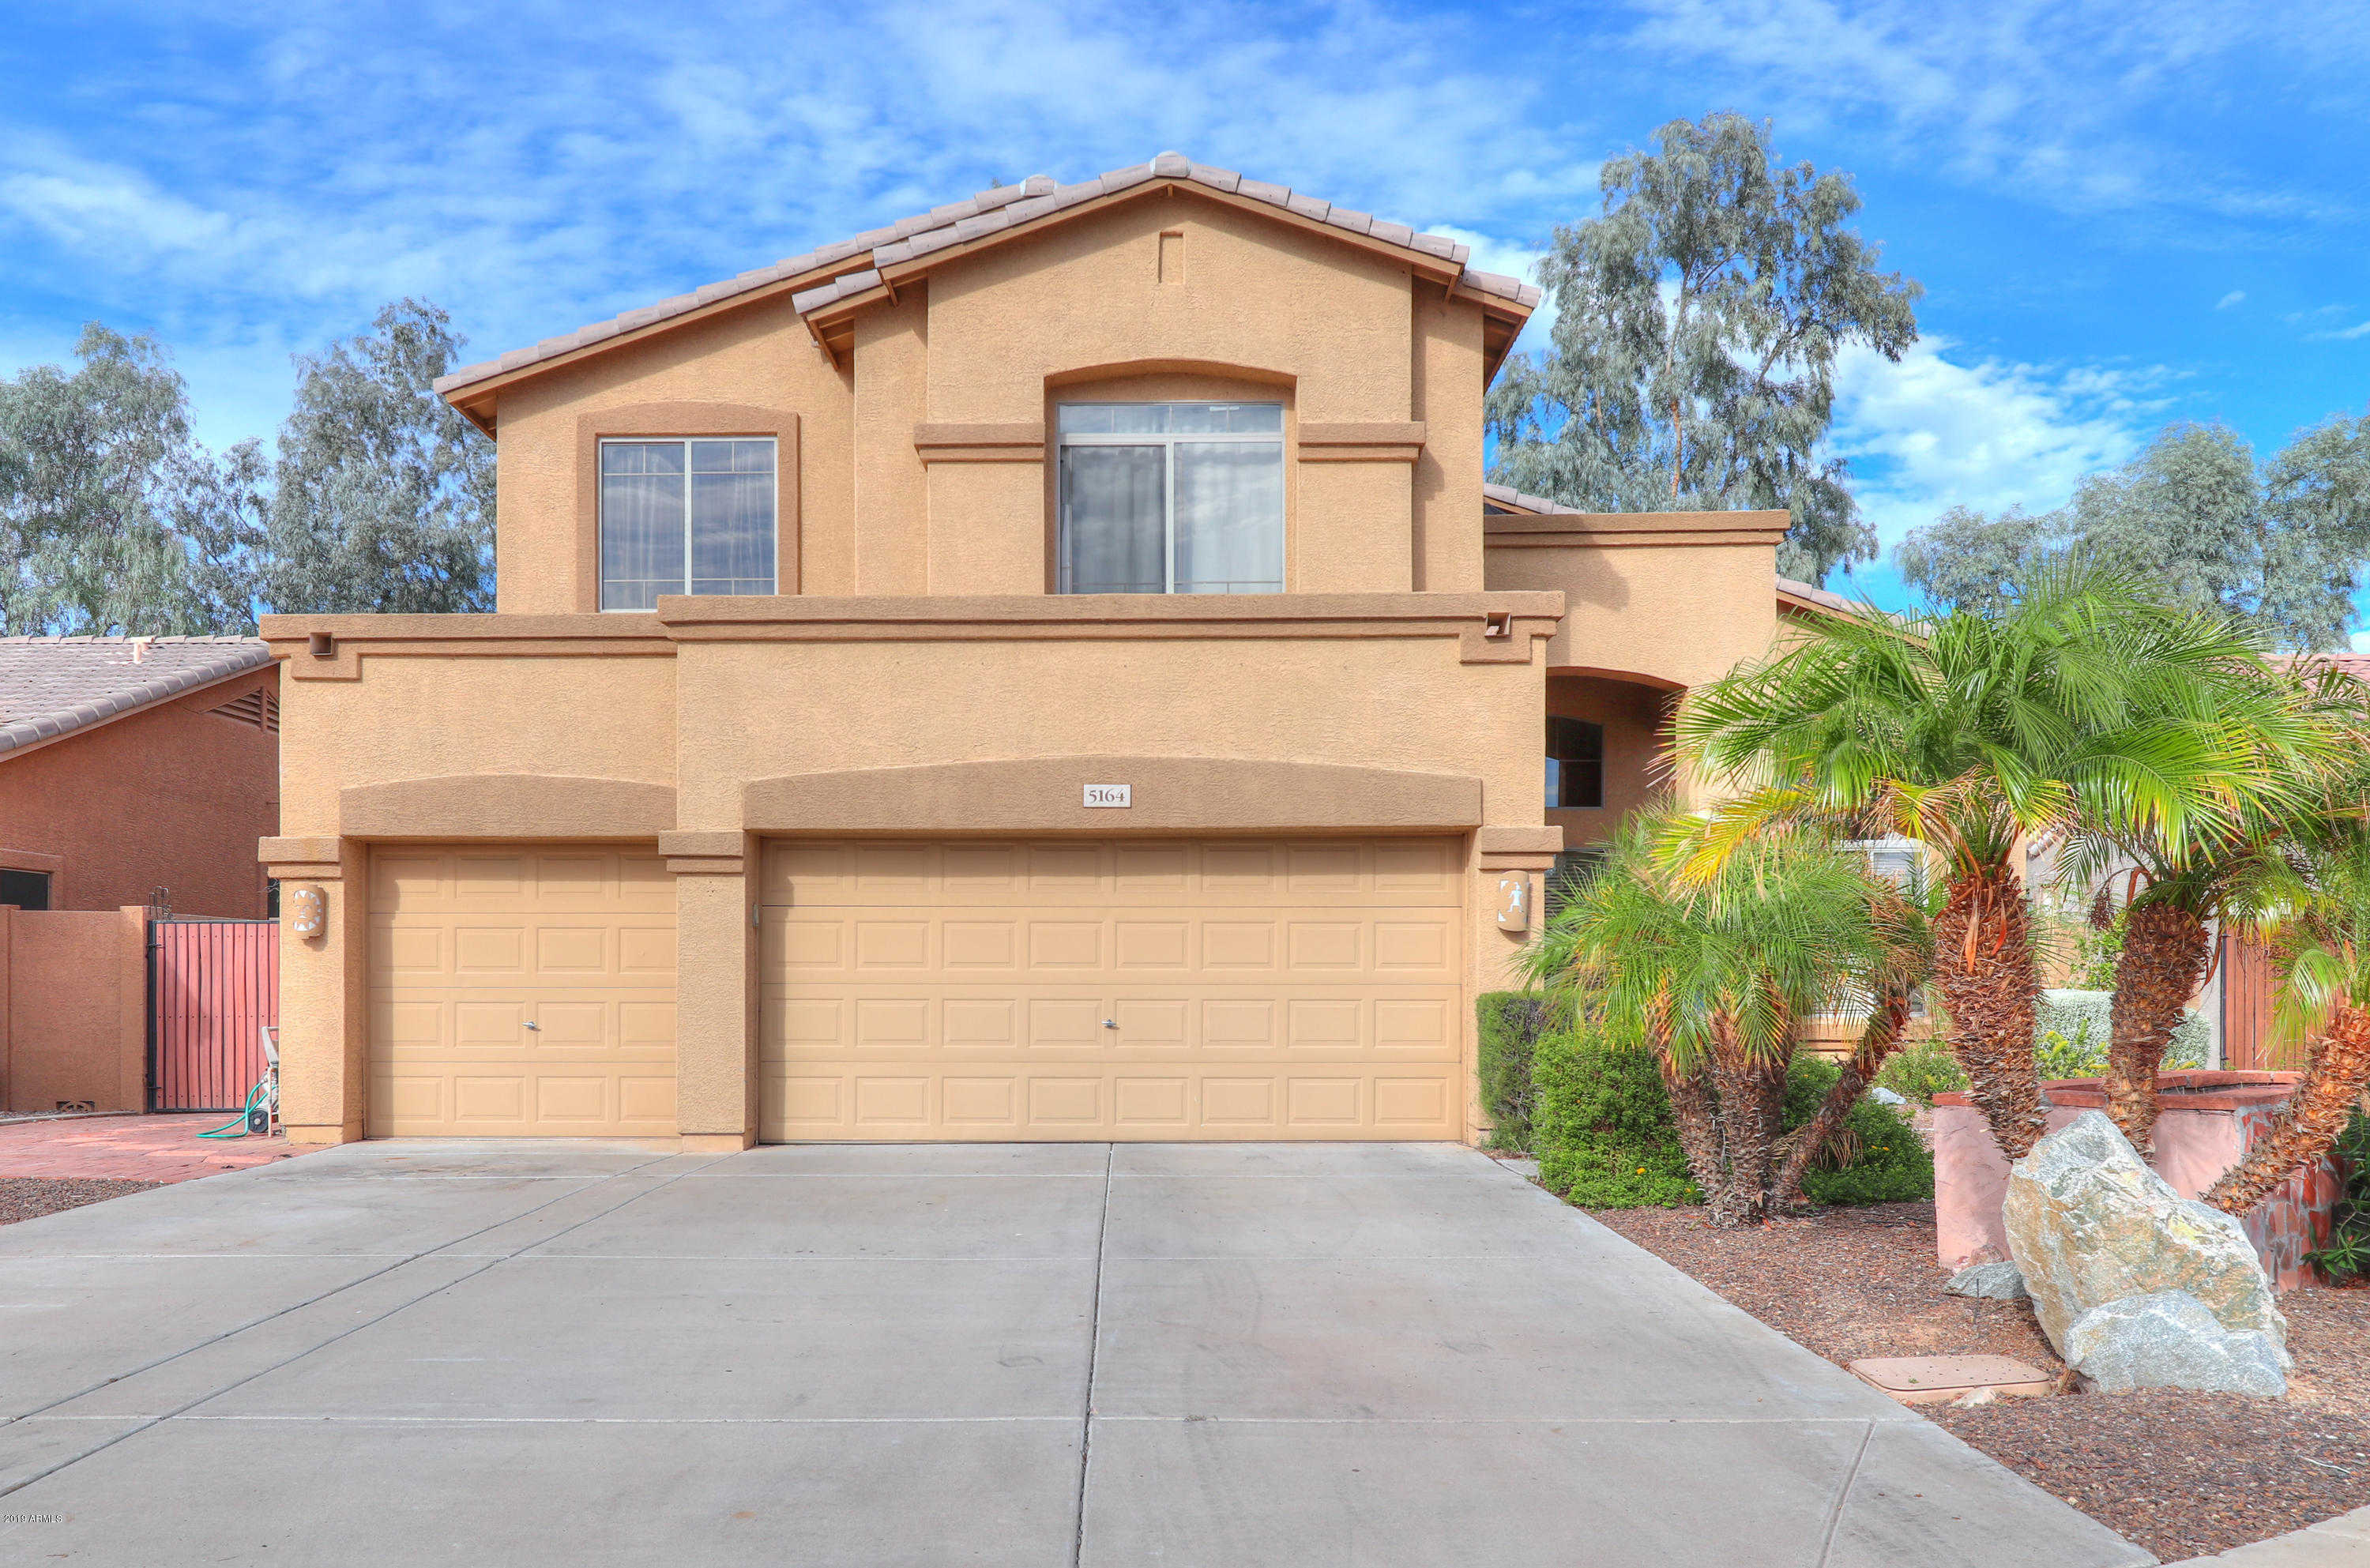 $350,000 - 4Br/3Ba - Home for Sale in Touchstone, Glendale